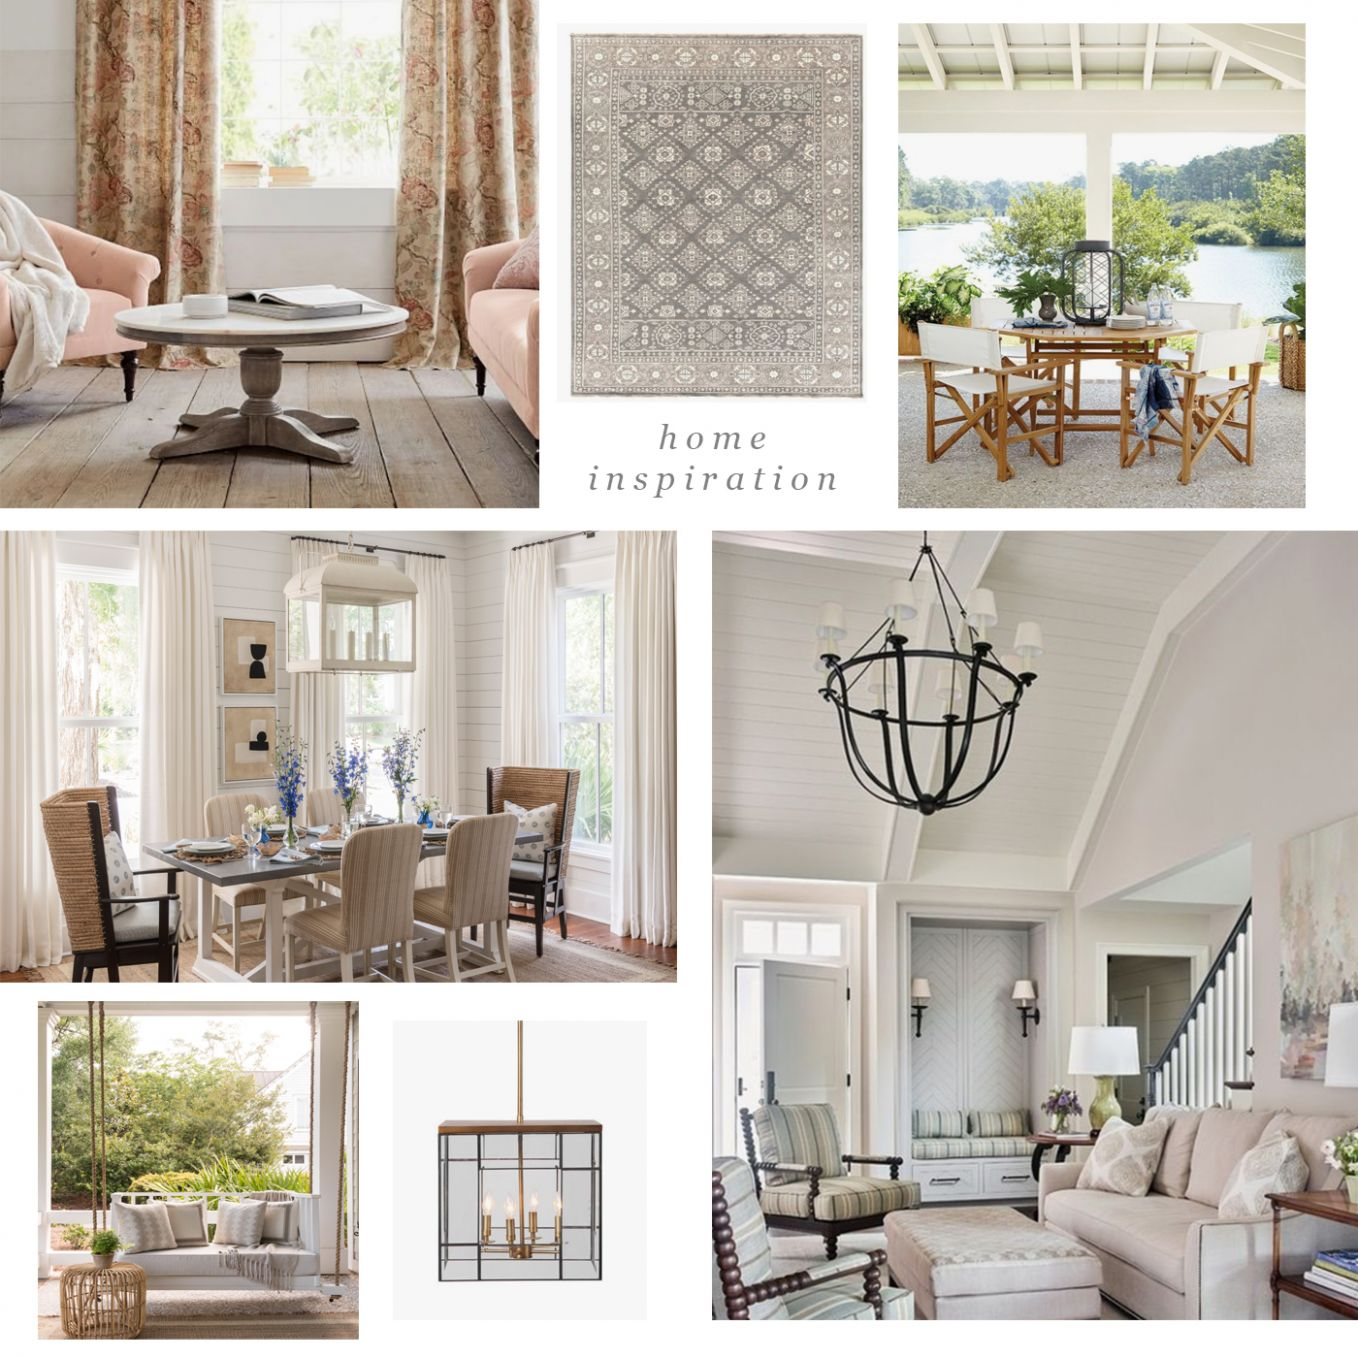 New House Decor Inspiration – The Small Things Blog - house inspiration blog